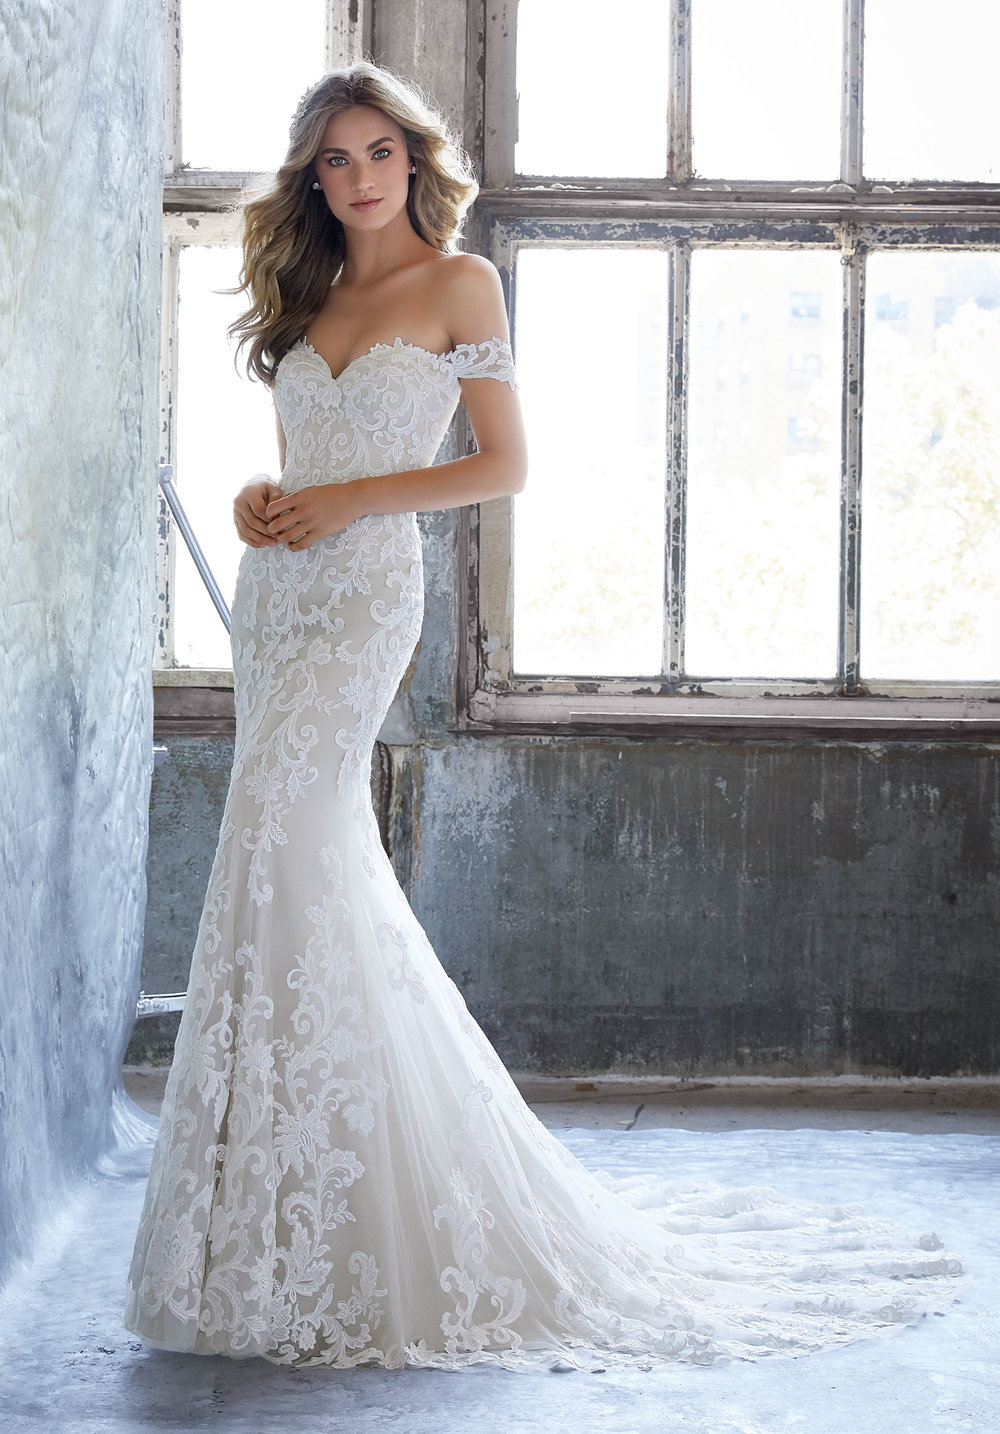 The Bride - Nothing says Hollywood Glam Wedding like this gorgeous, glitzy, fitted Mori Lee dress. The frosted lace, sweetheart neckline, and off the shoulder straps will be a vintage showstopper.